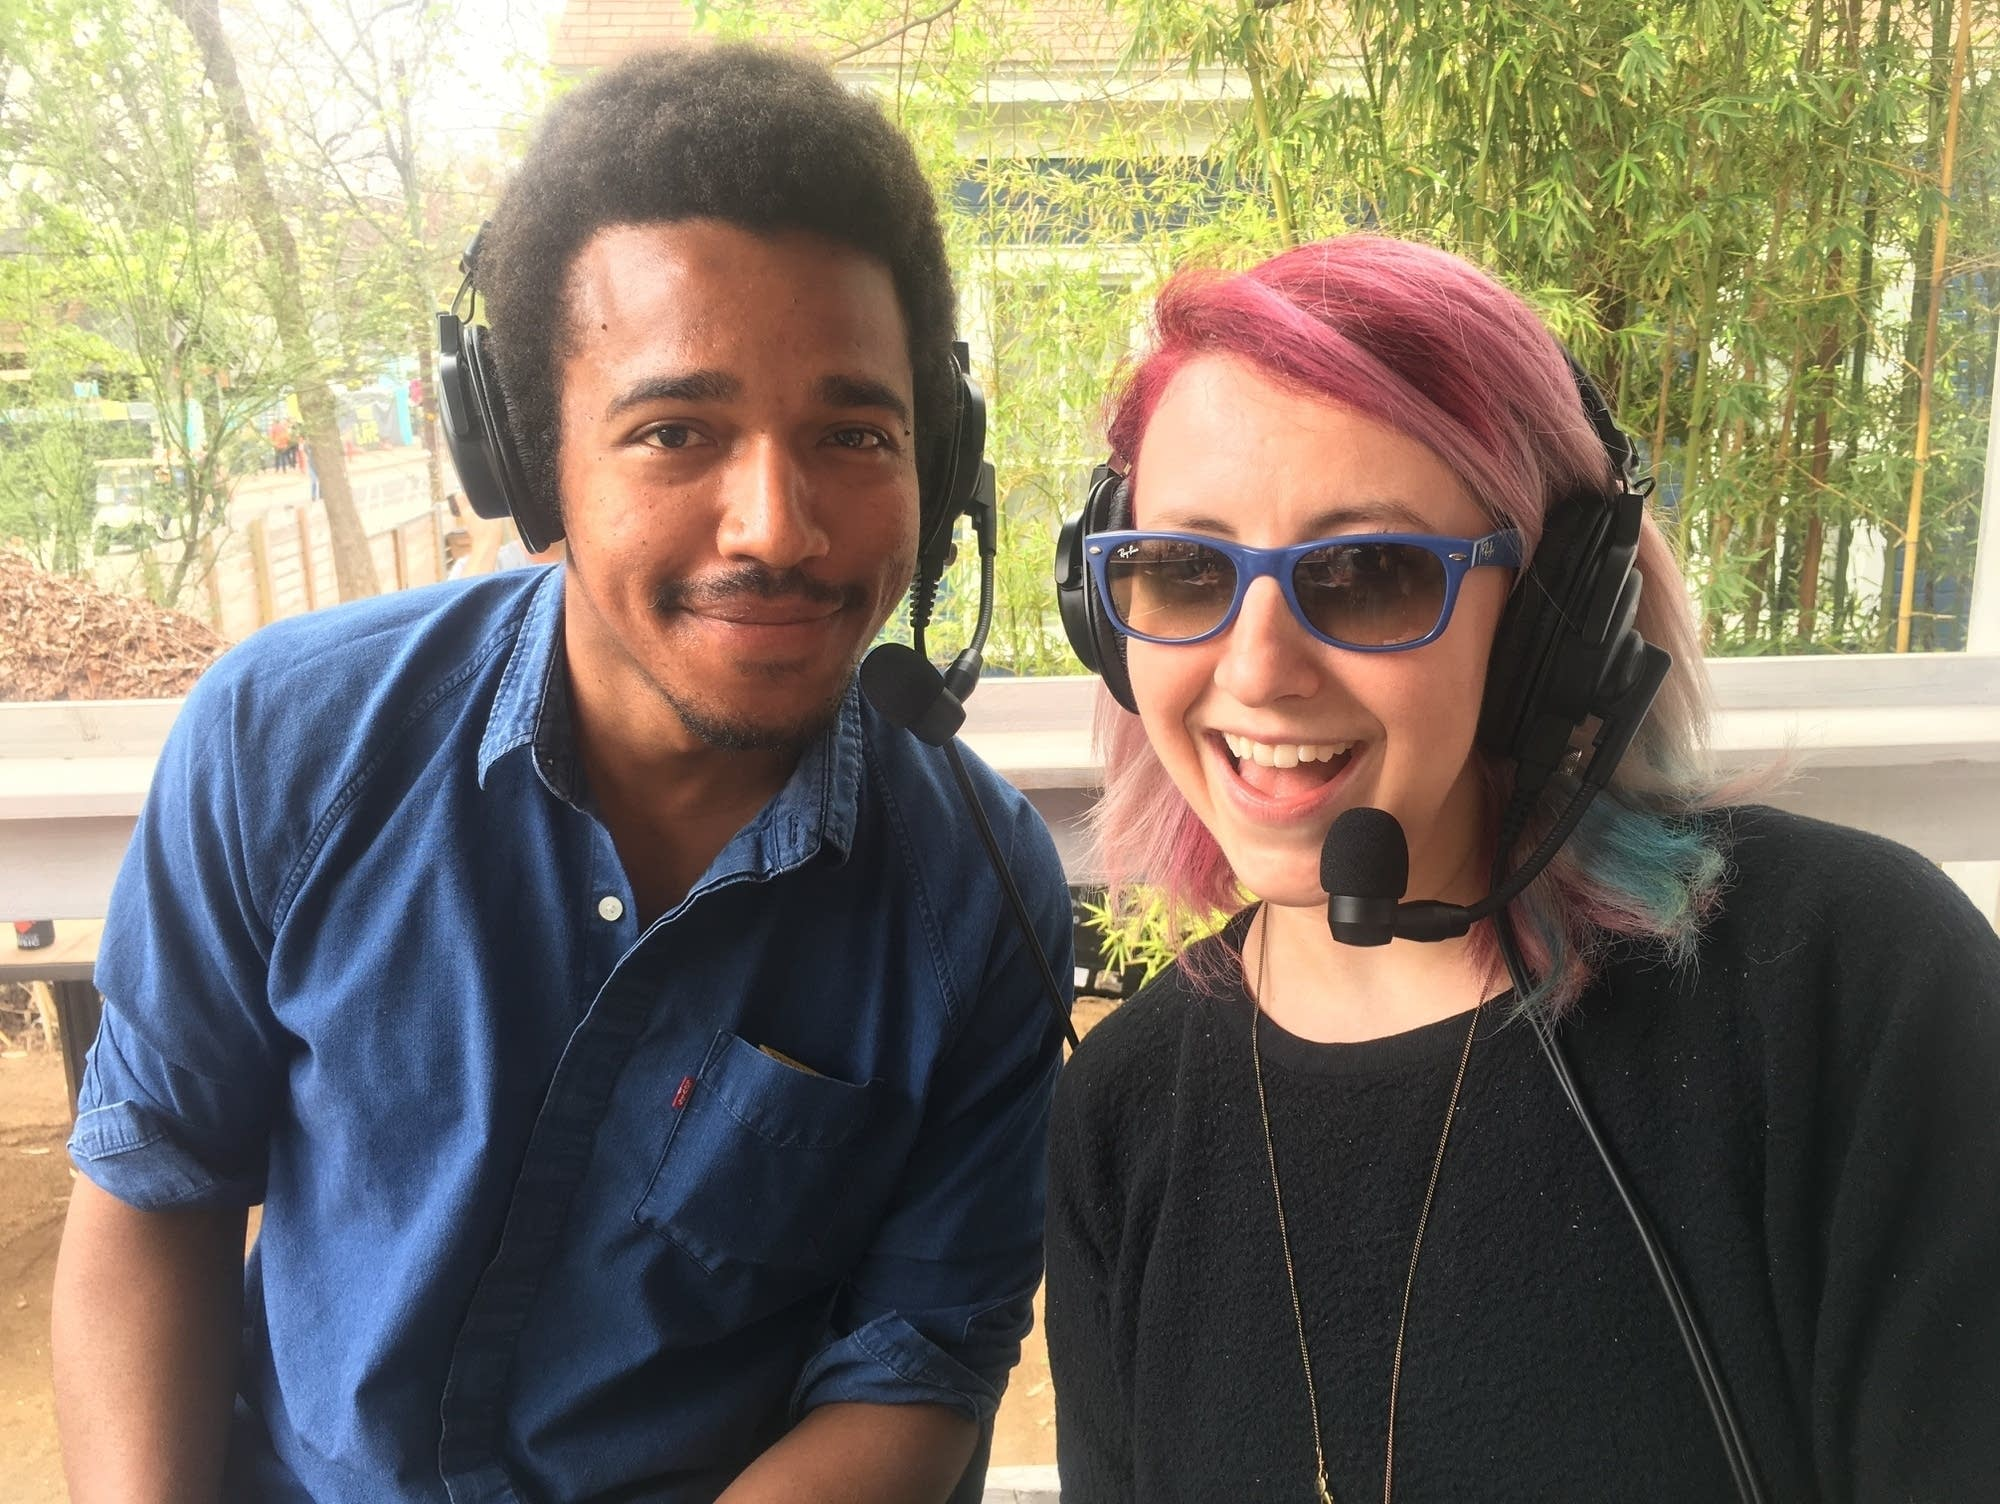 Benjamin Booker and Jade show off their nifty headsets